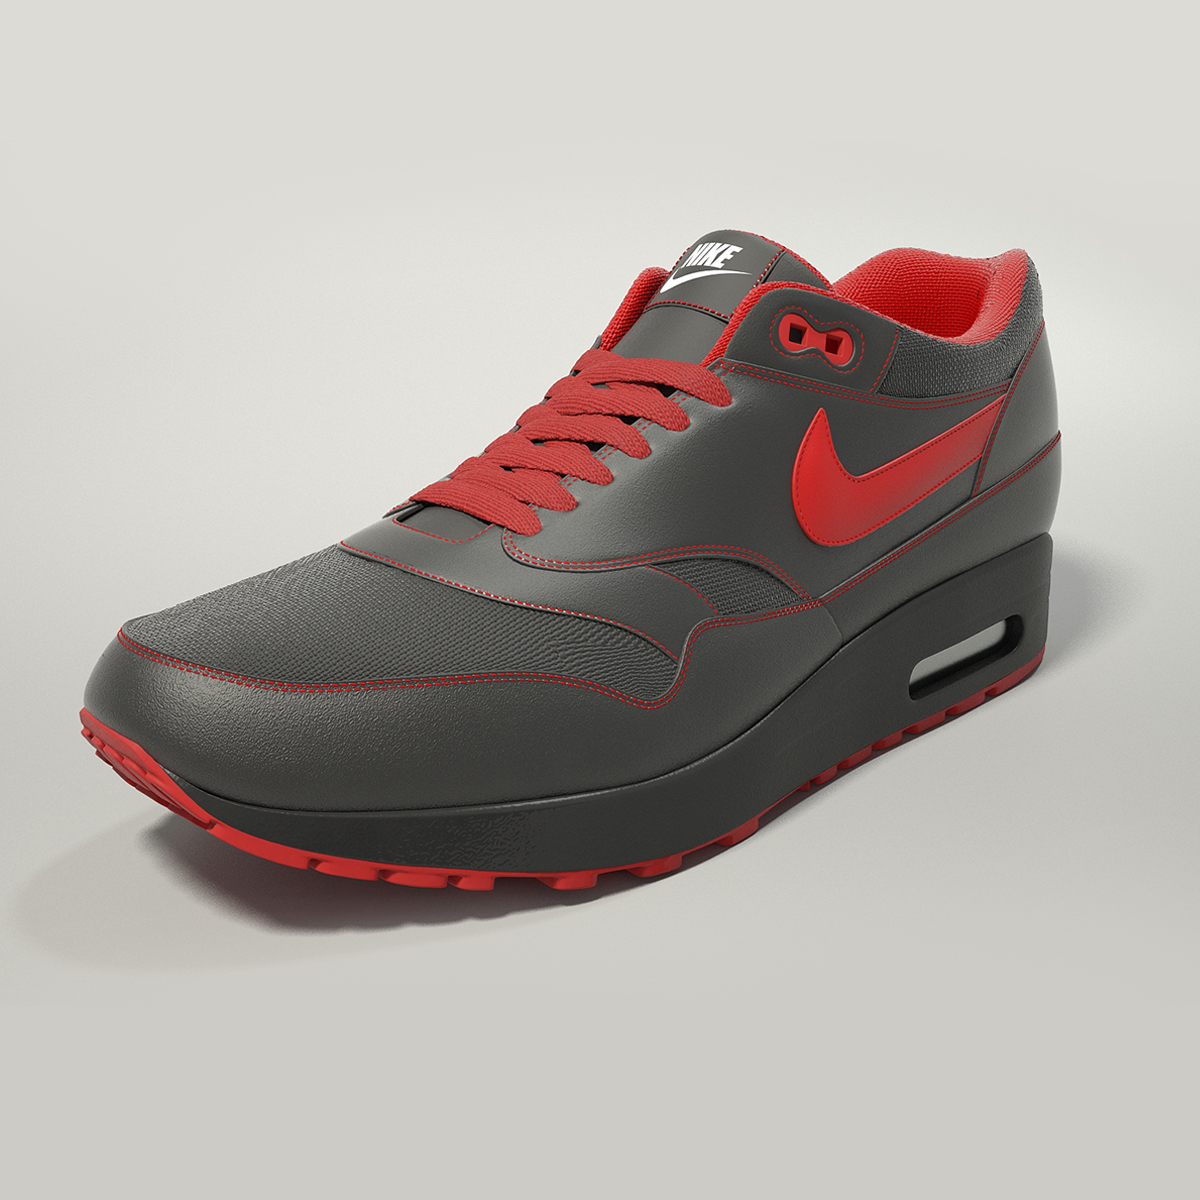 nike air max 1 3d model max obj fbx jpeg 265398